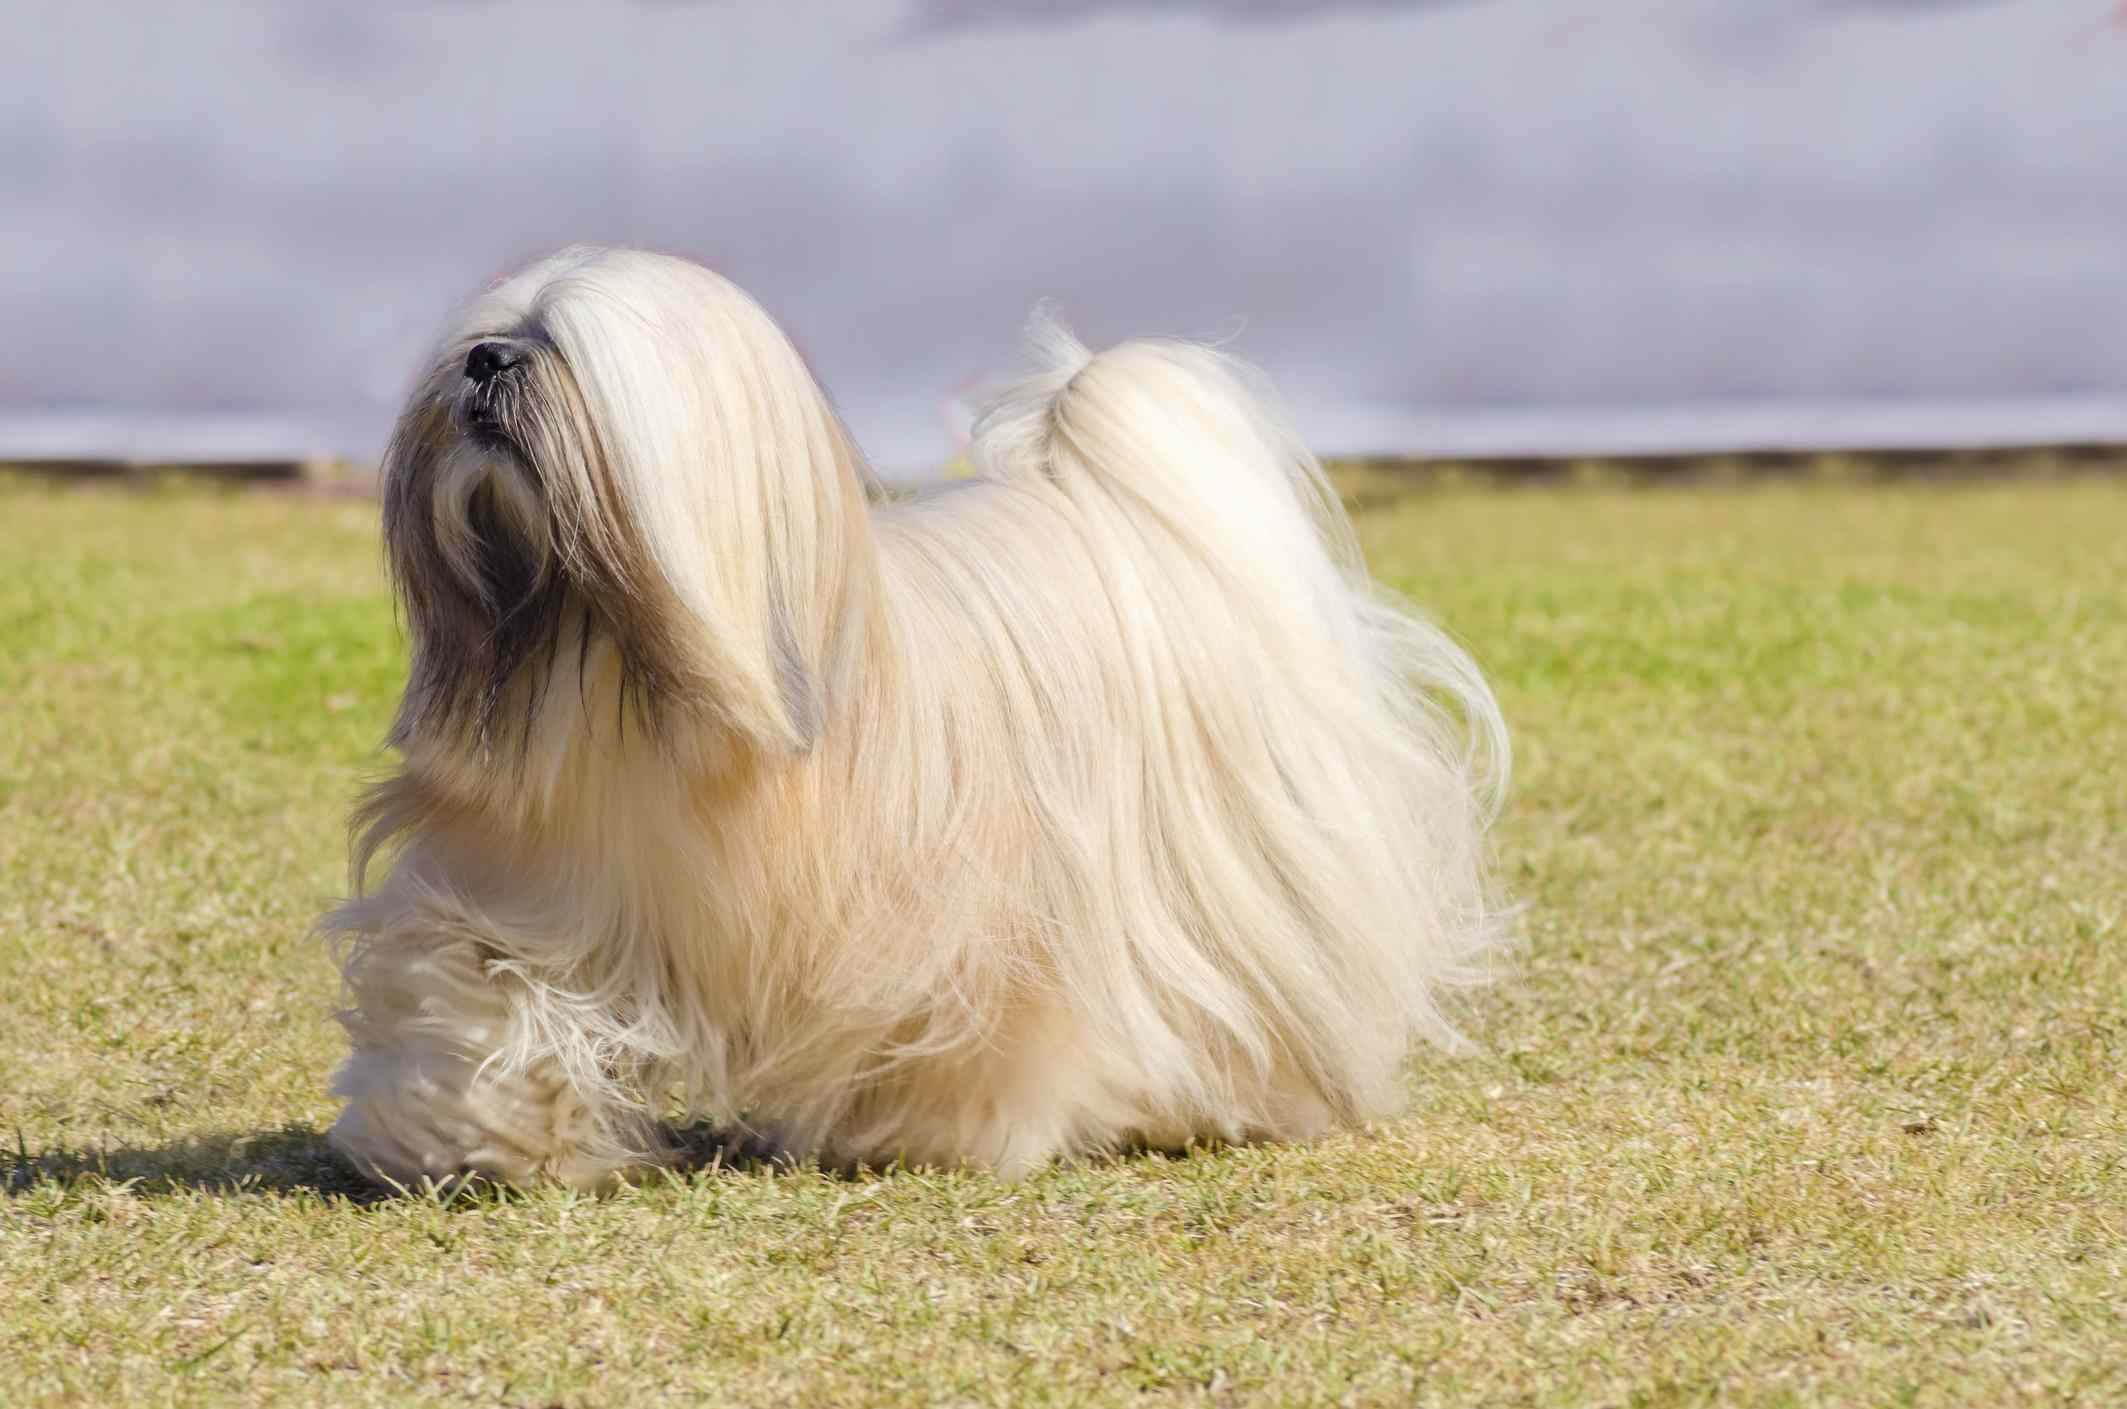 Lhasa Apso walking in the grass, side profile.